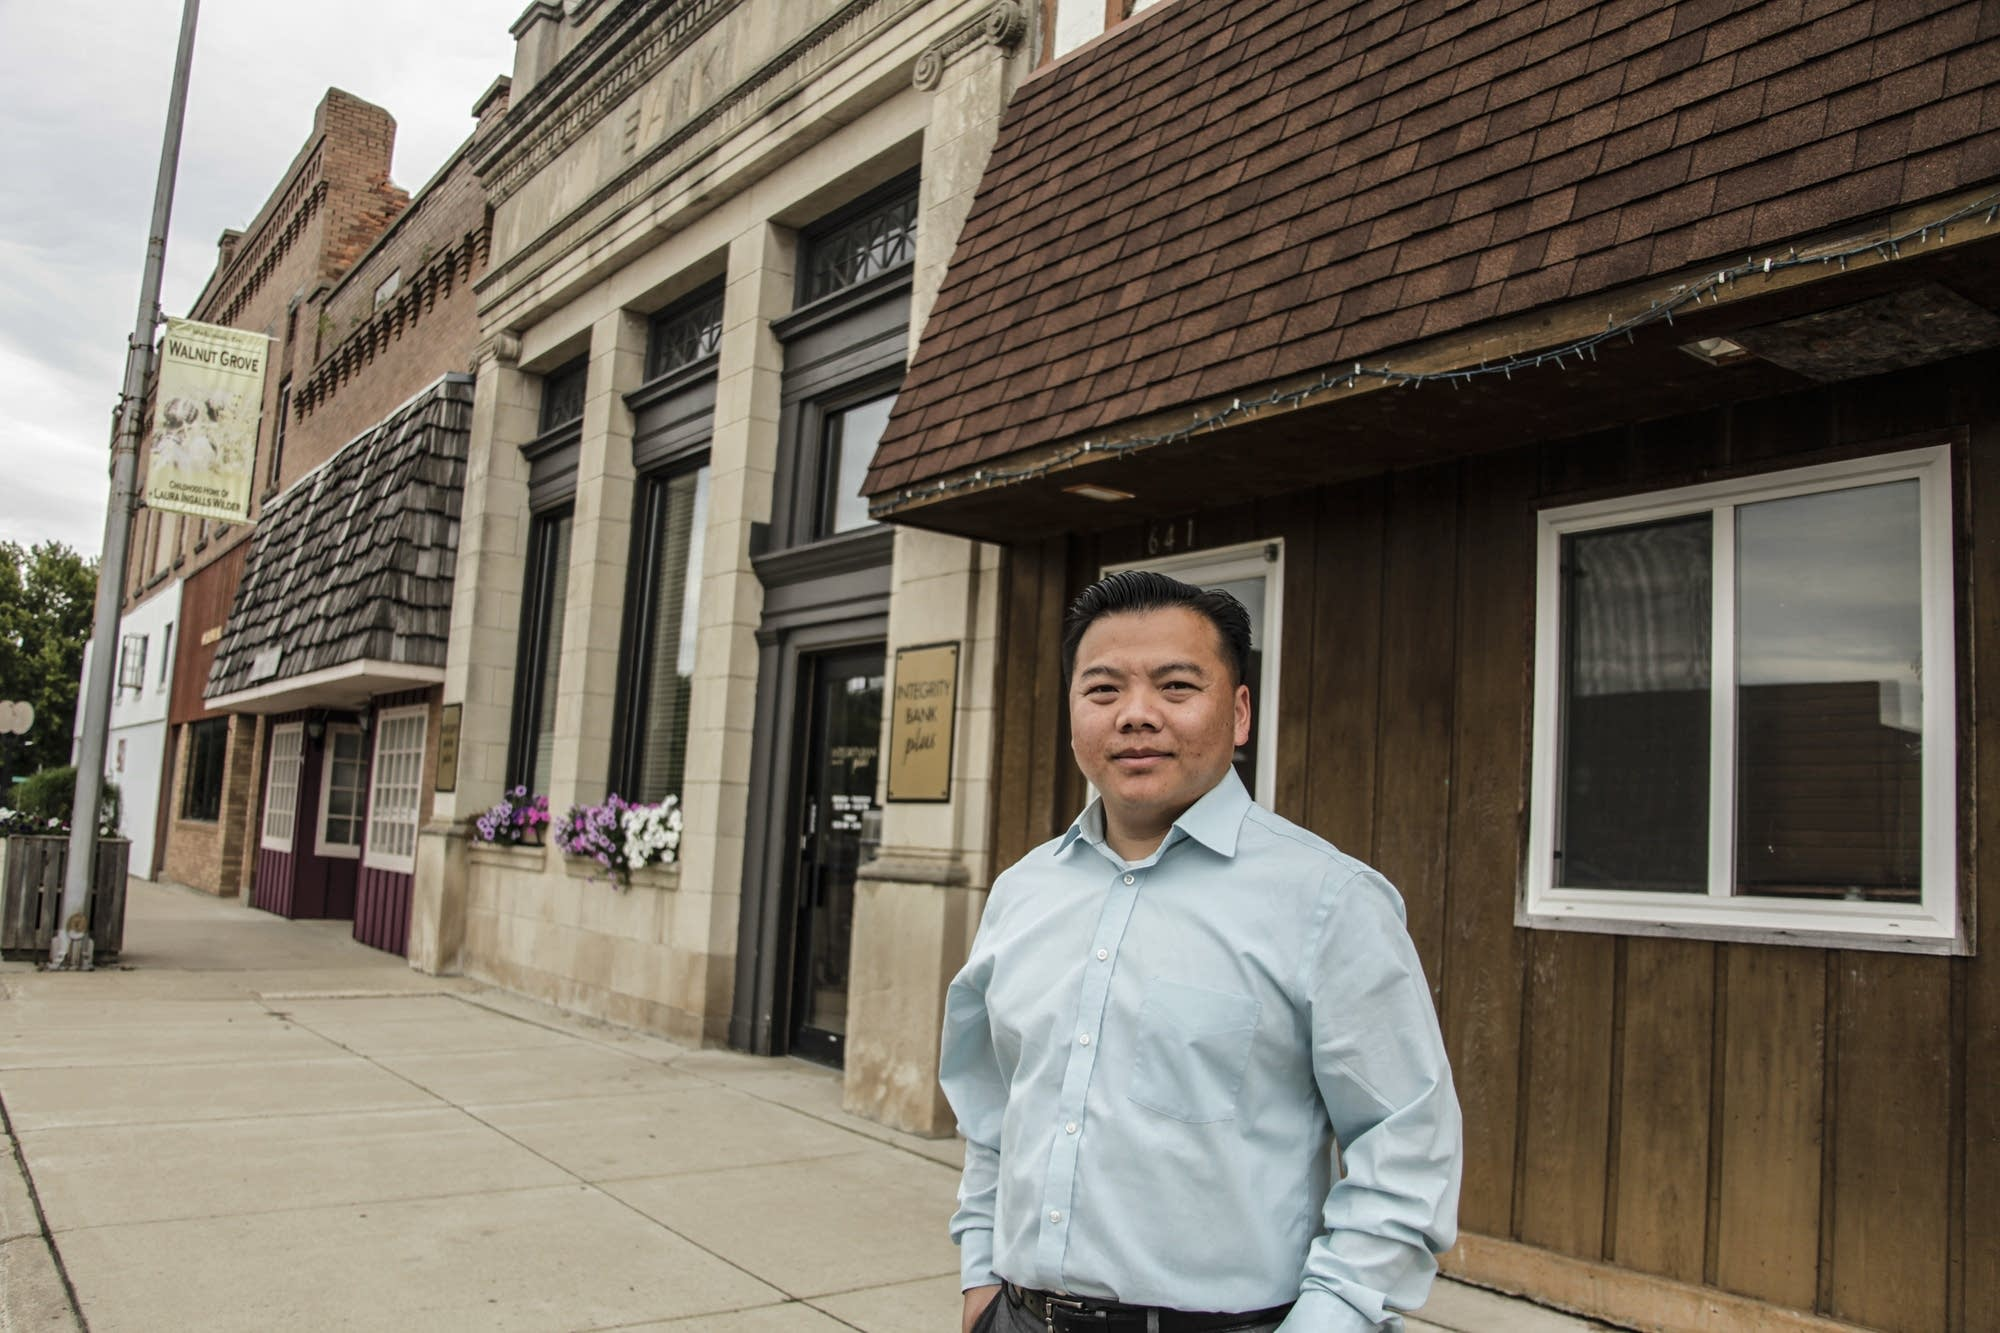 Xiong Yang stands on the main street in Walnut Grove.